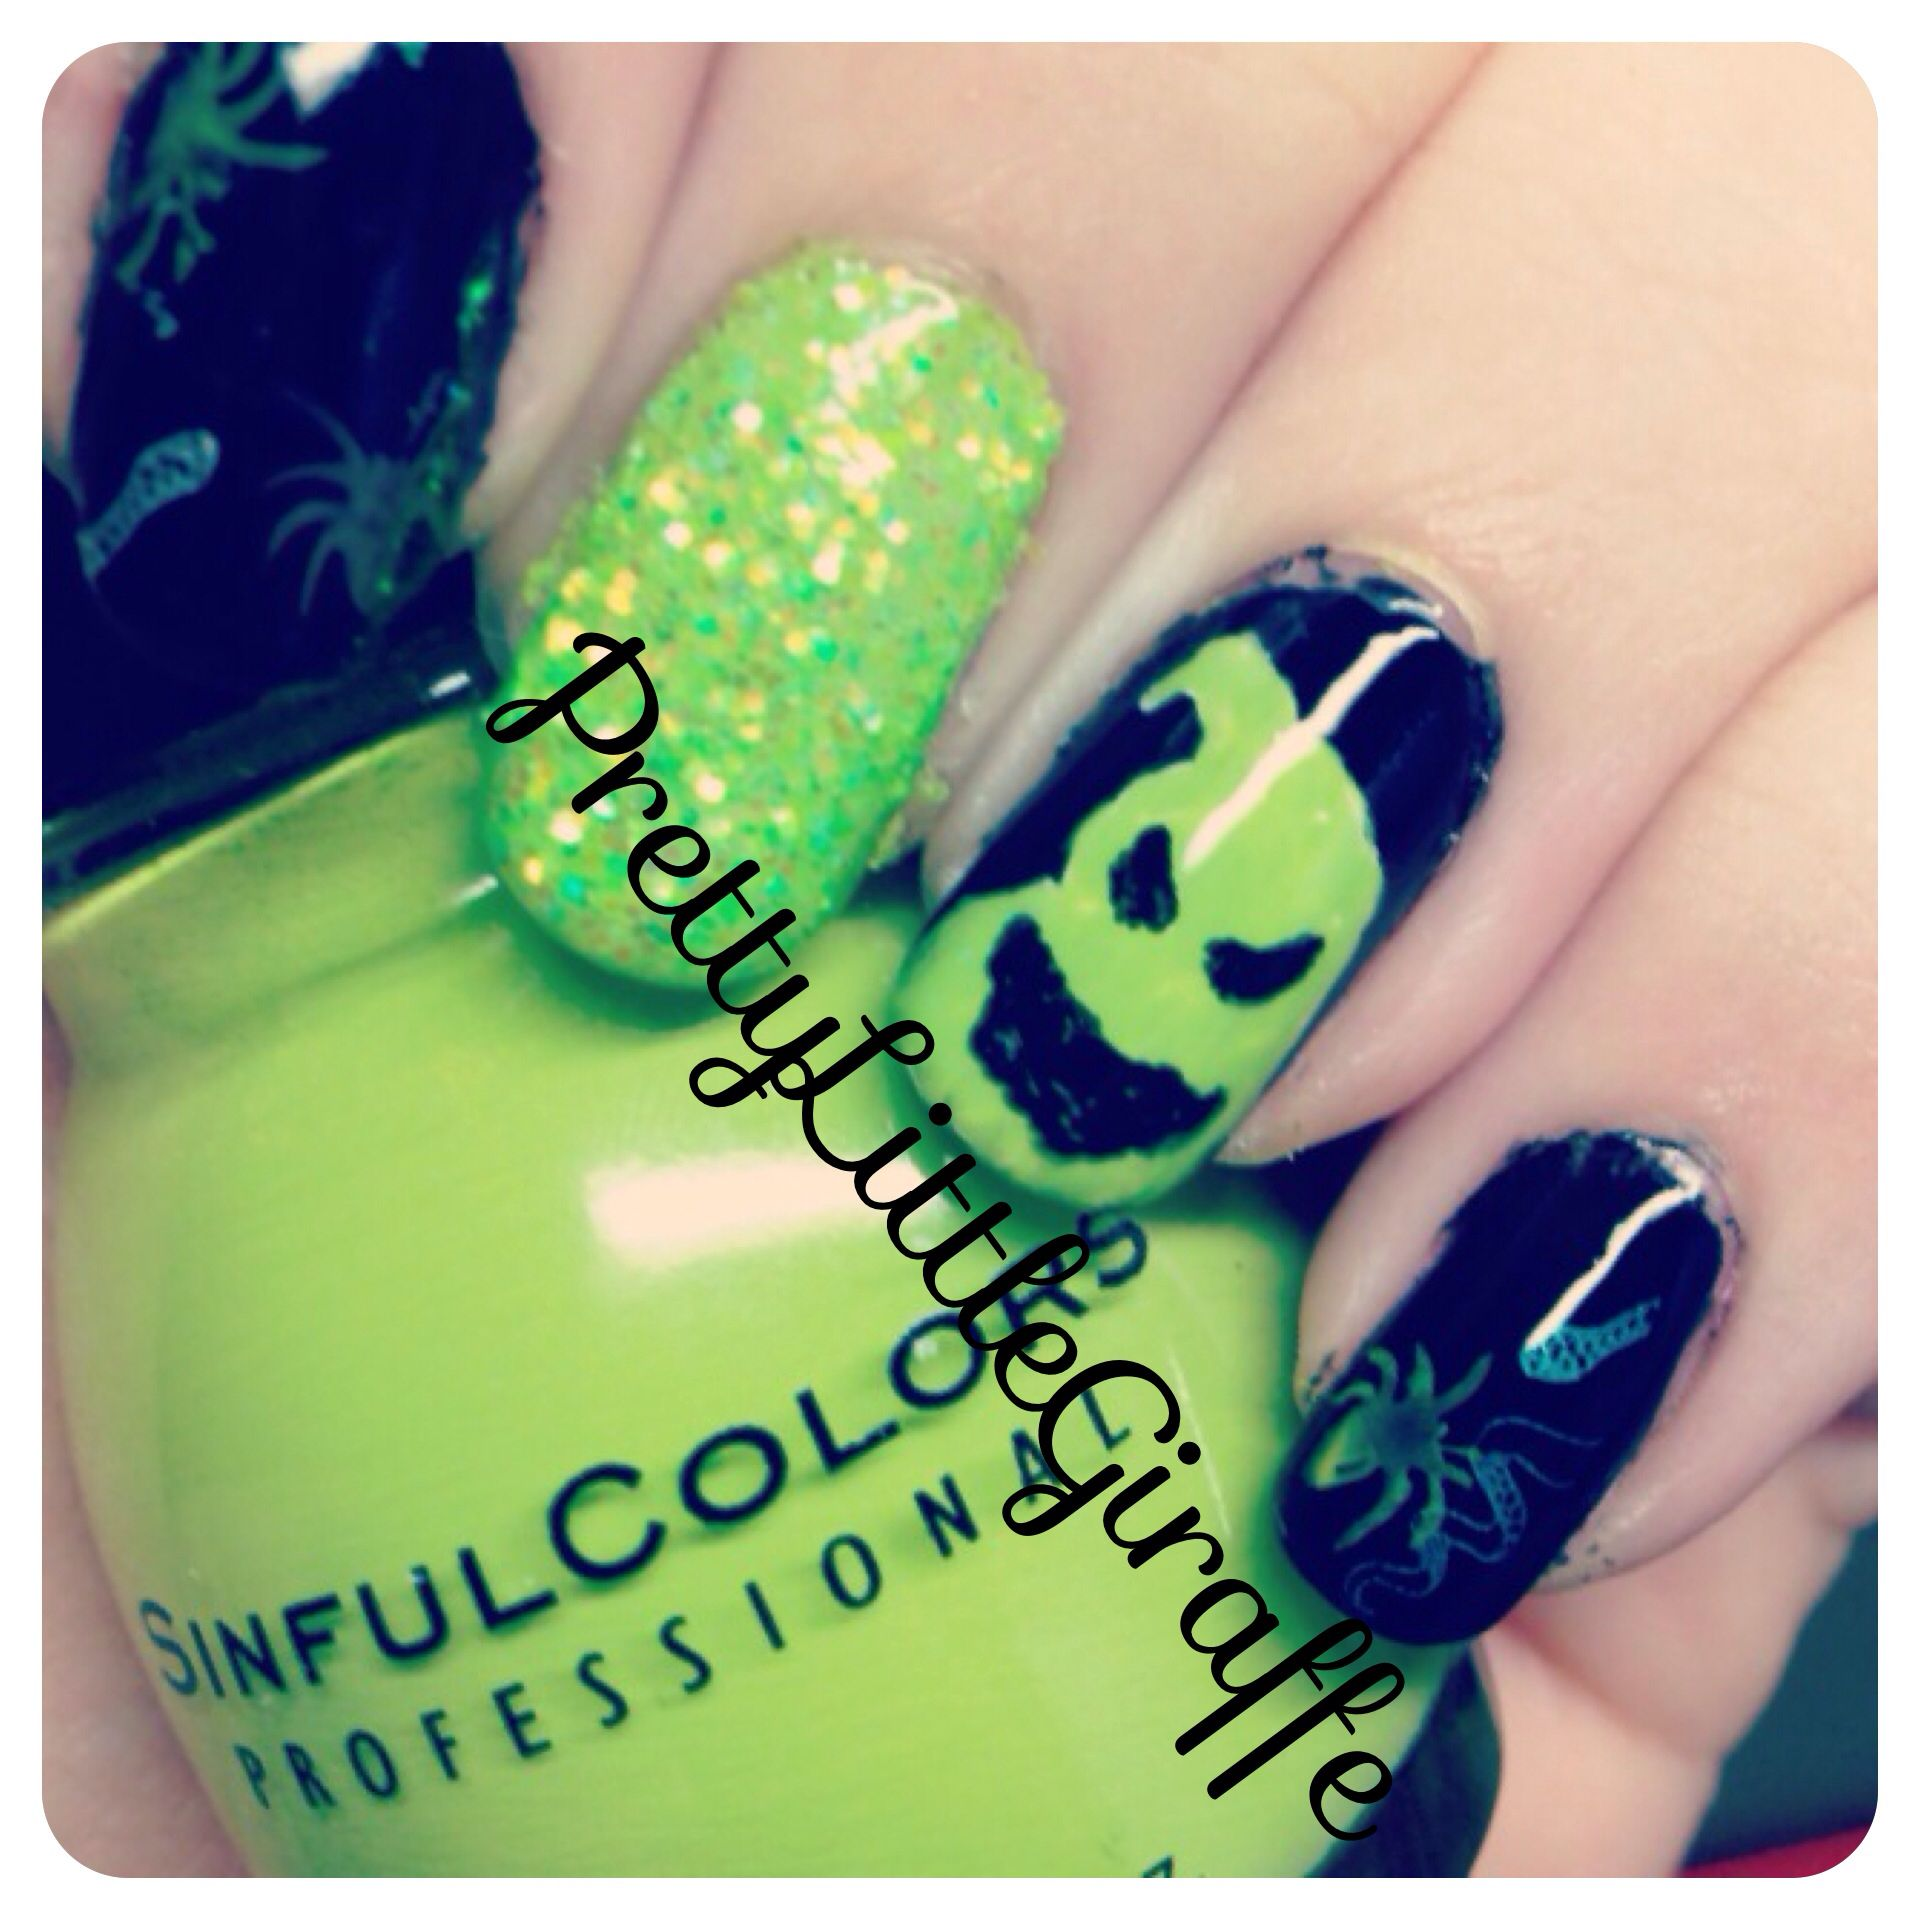 The nightmare before christmas oogie boogie halloween nail art ...